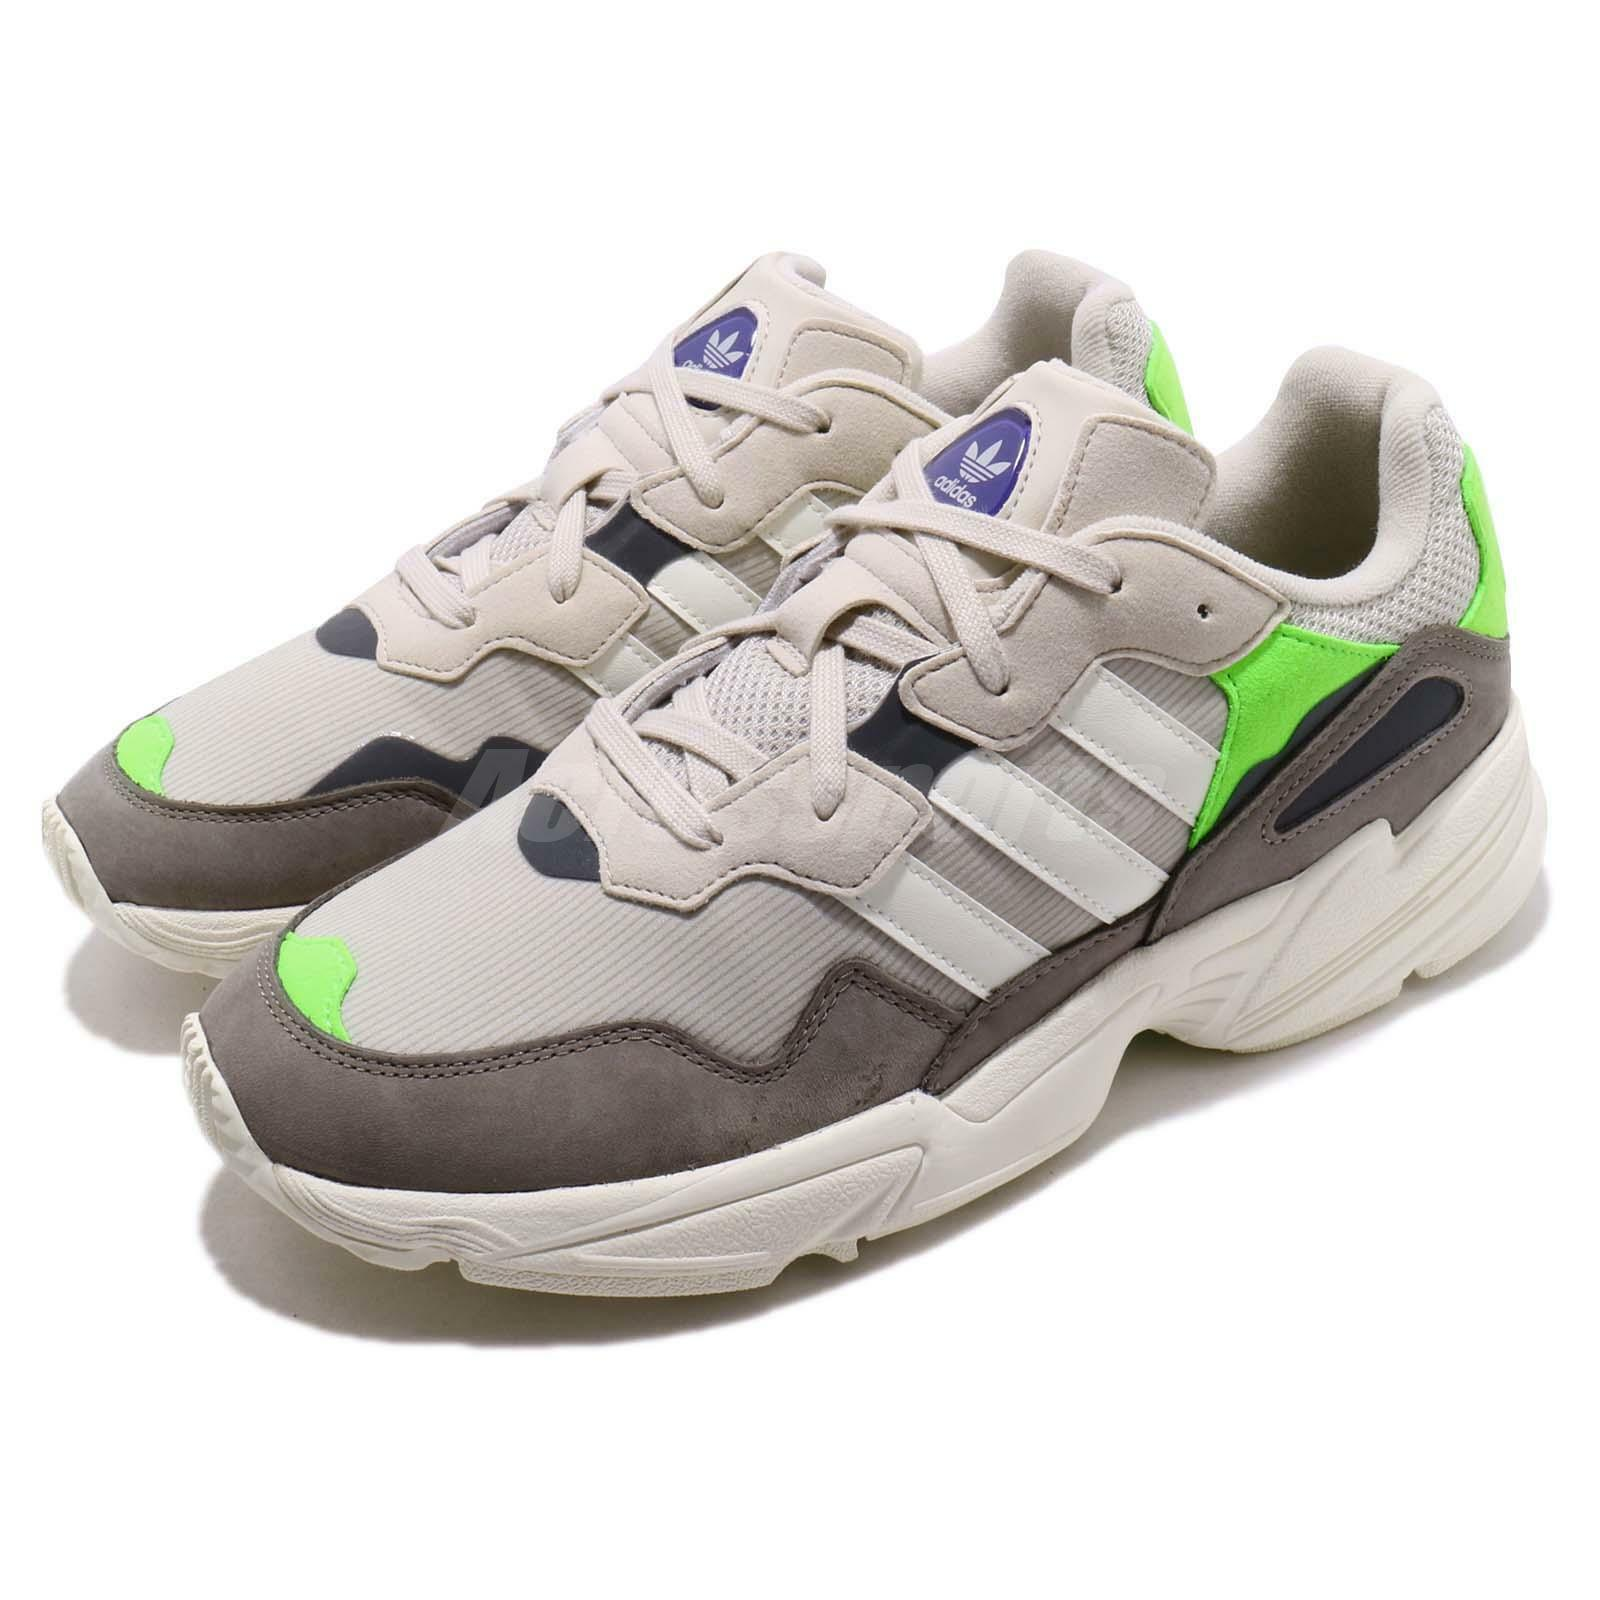 Adidas Originals Yung-96 Solar Green  Off White Grey Men Running shoes F97182  factory outlets